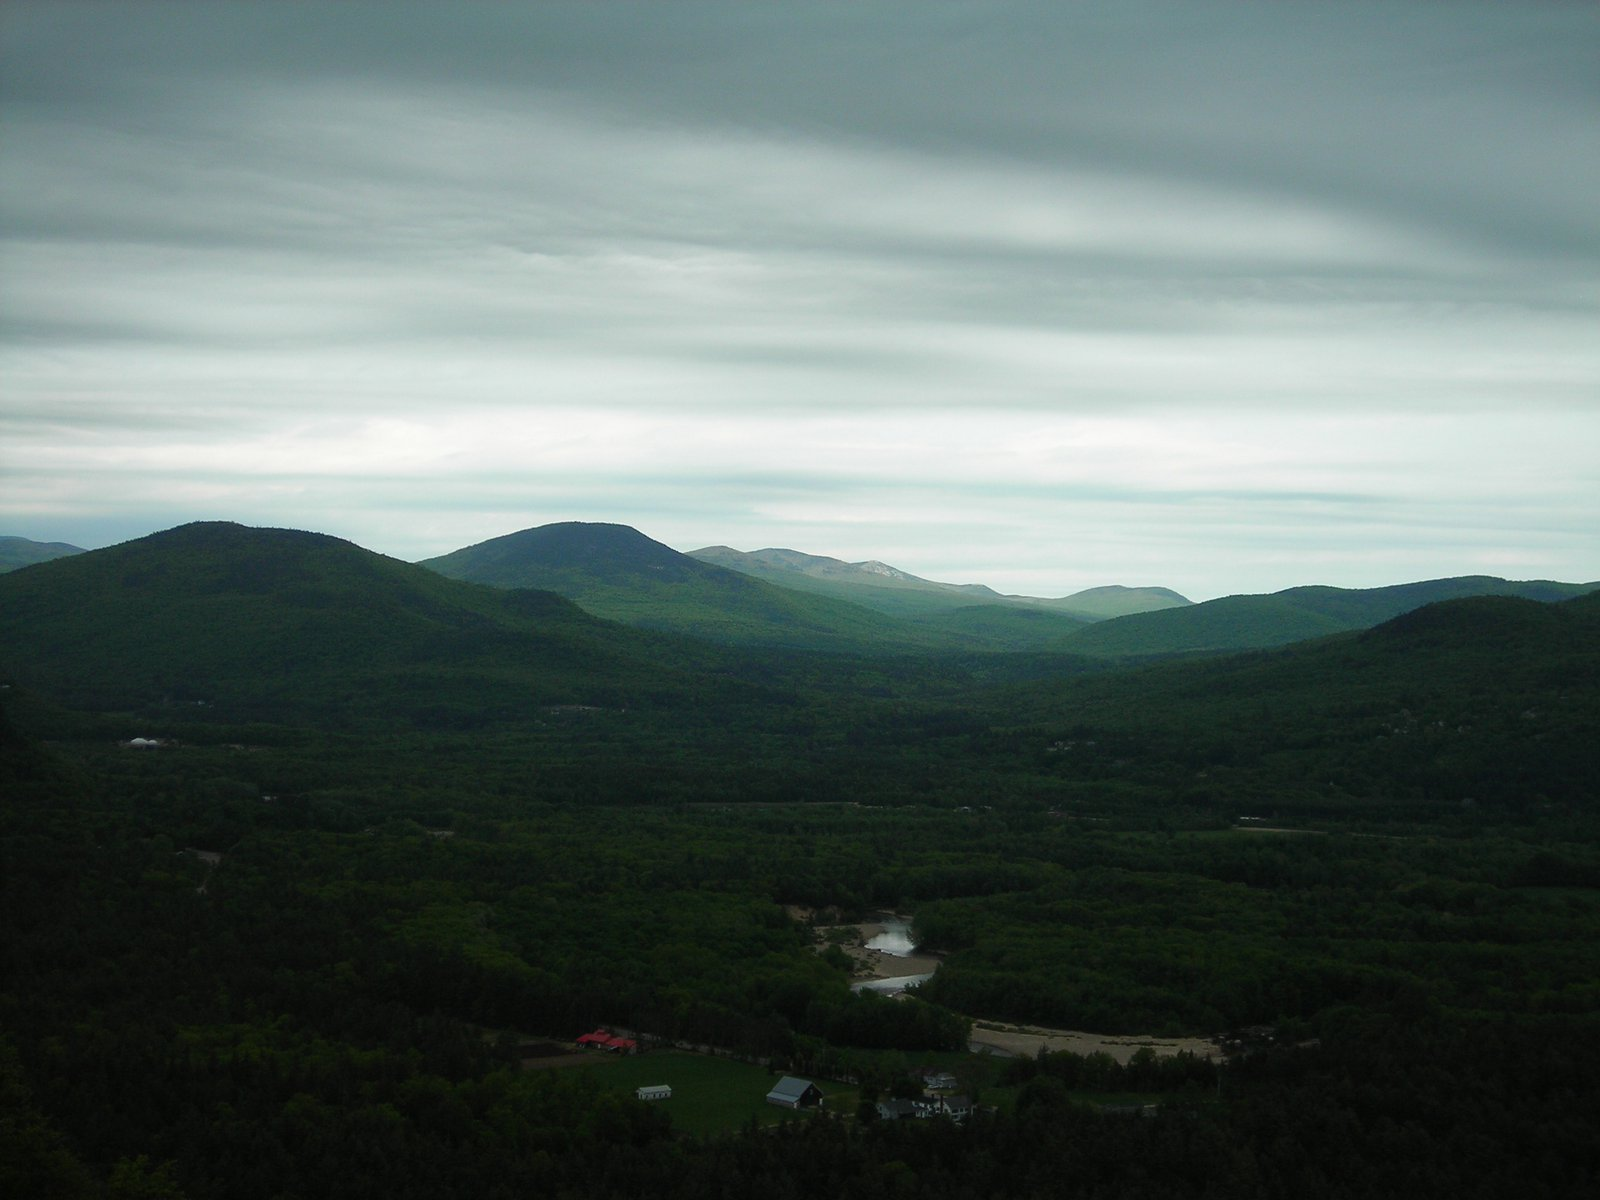 Saco River valley